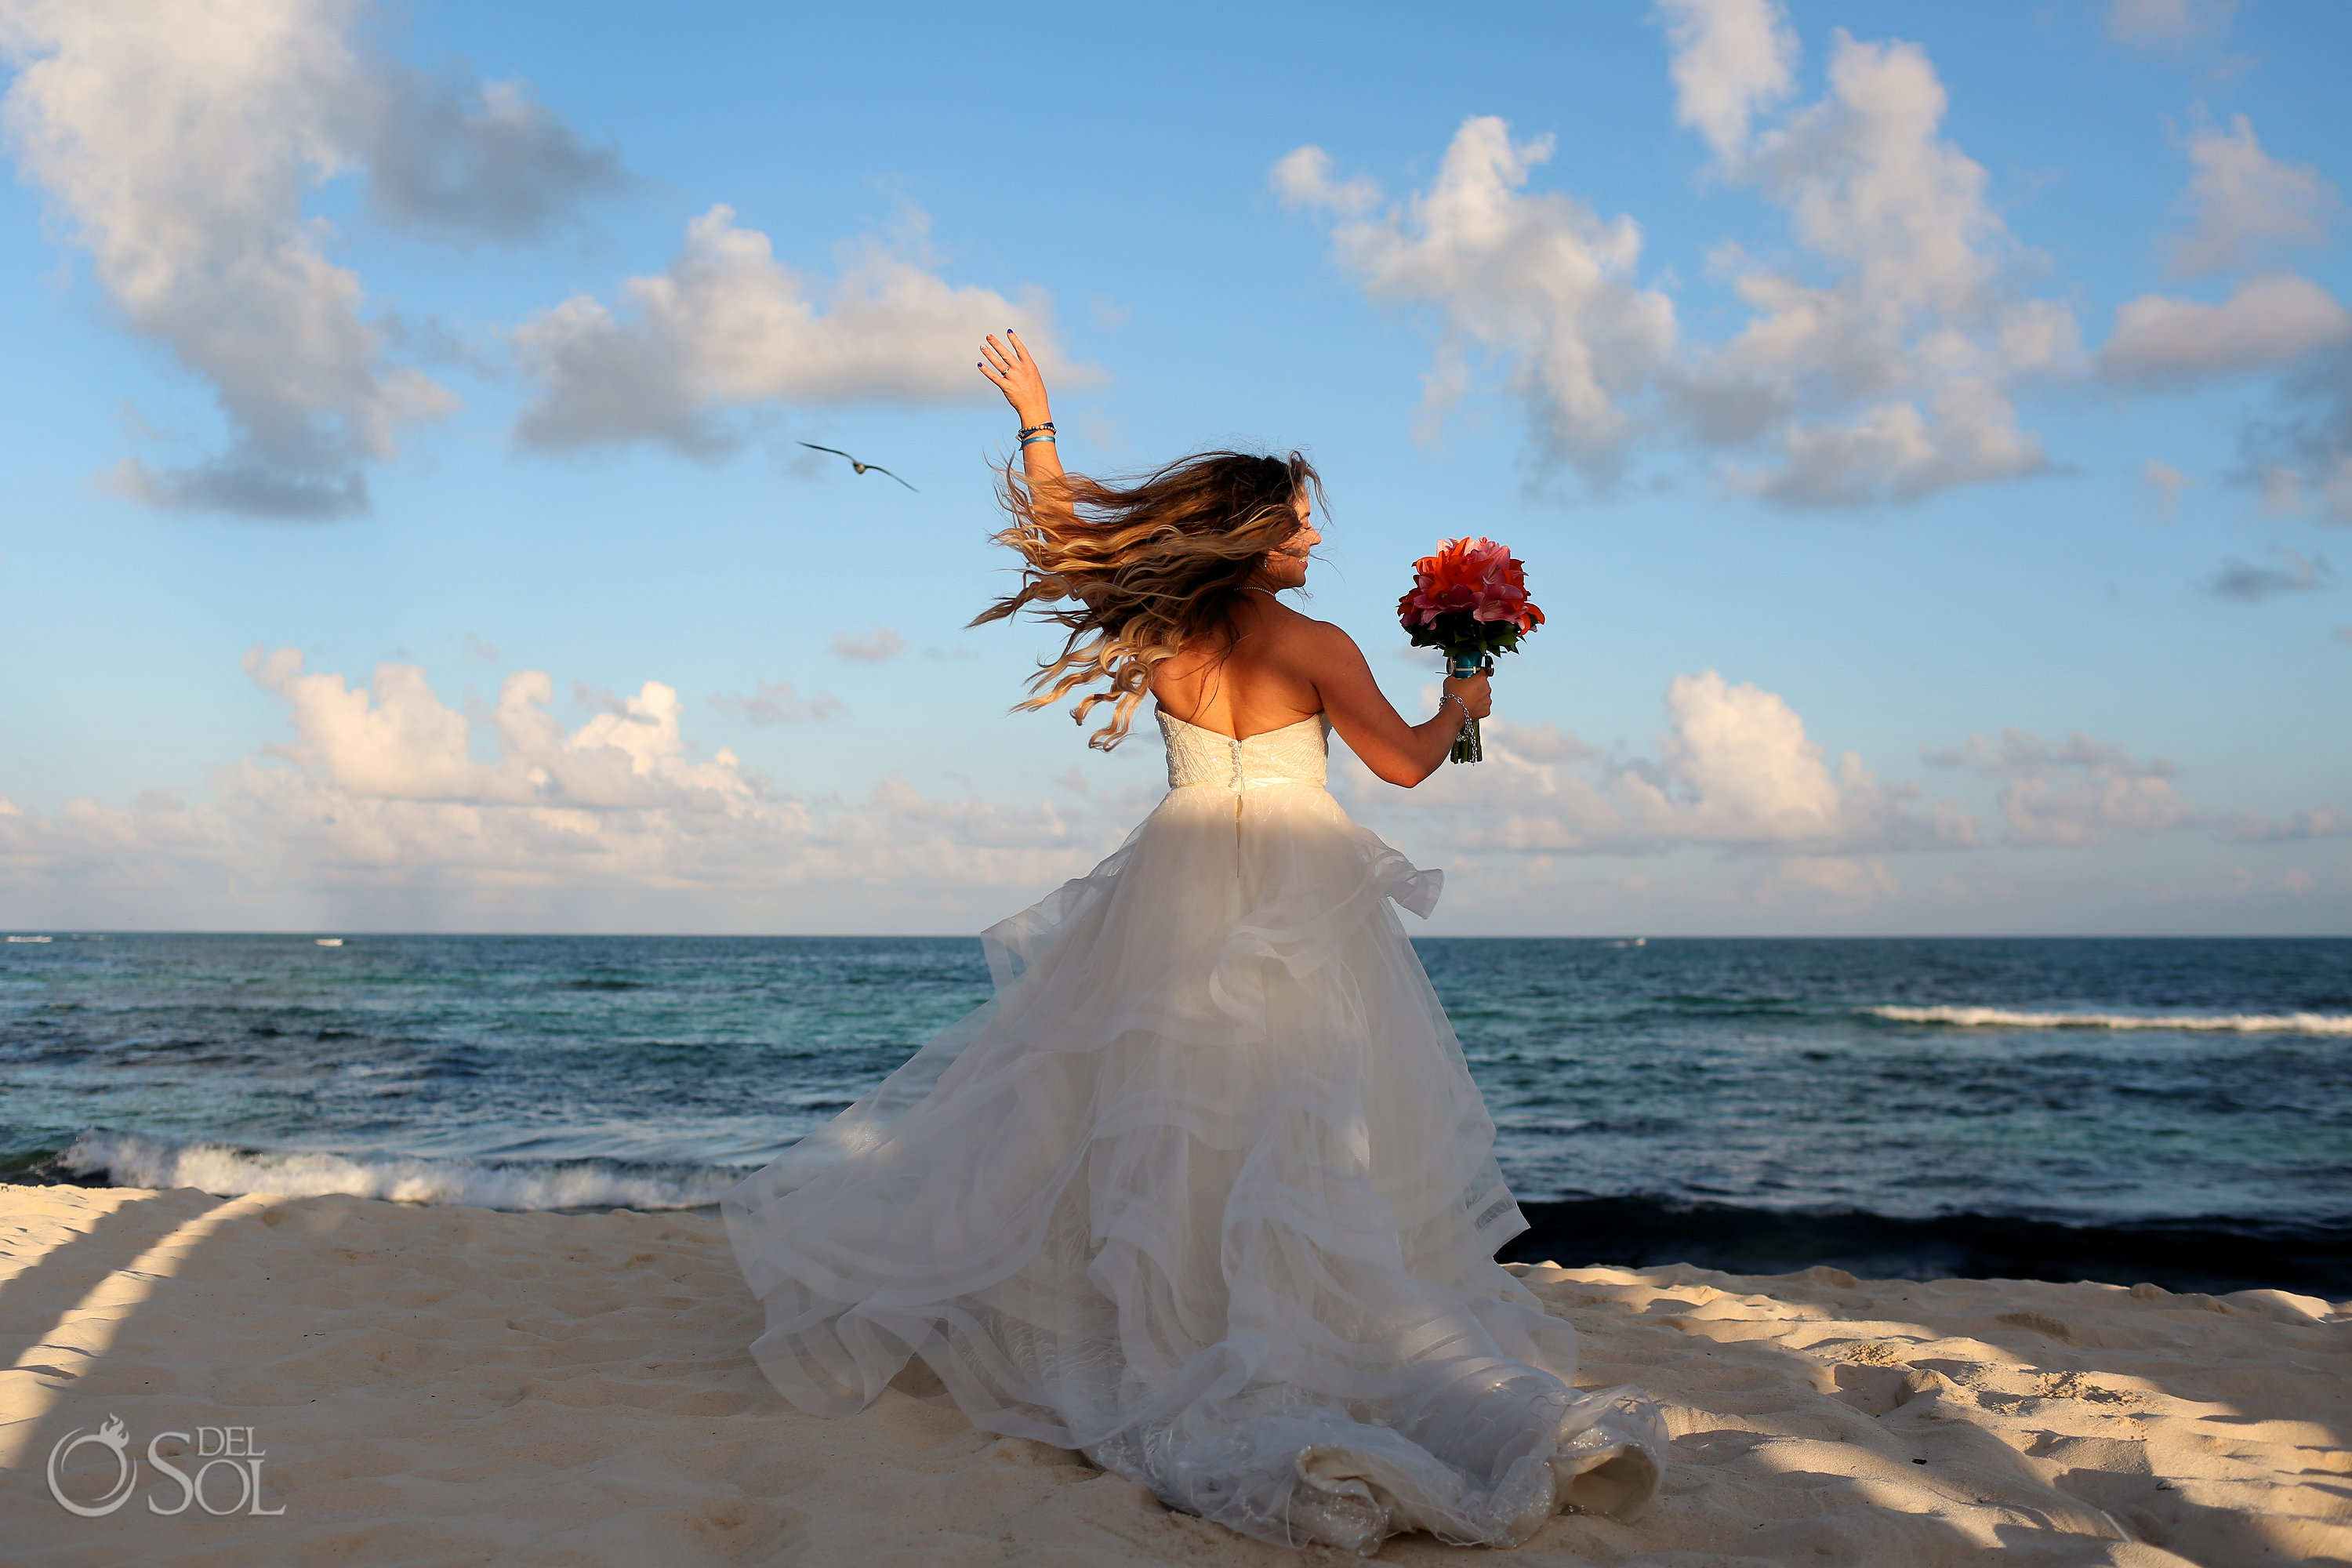 happy dancing bride spinning in her Matthew Christopher wedding dress with hair flying Iberostar Paraiso del Mar Wedding